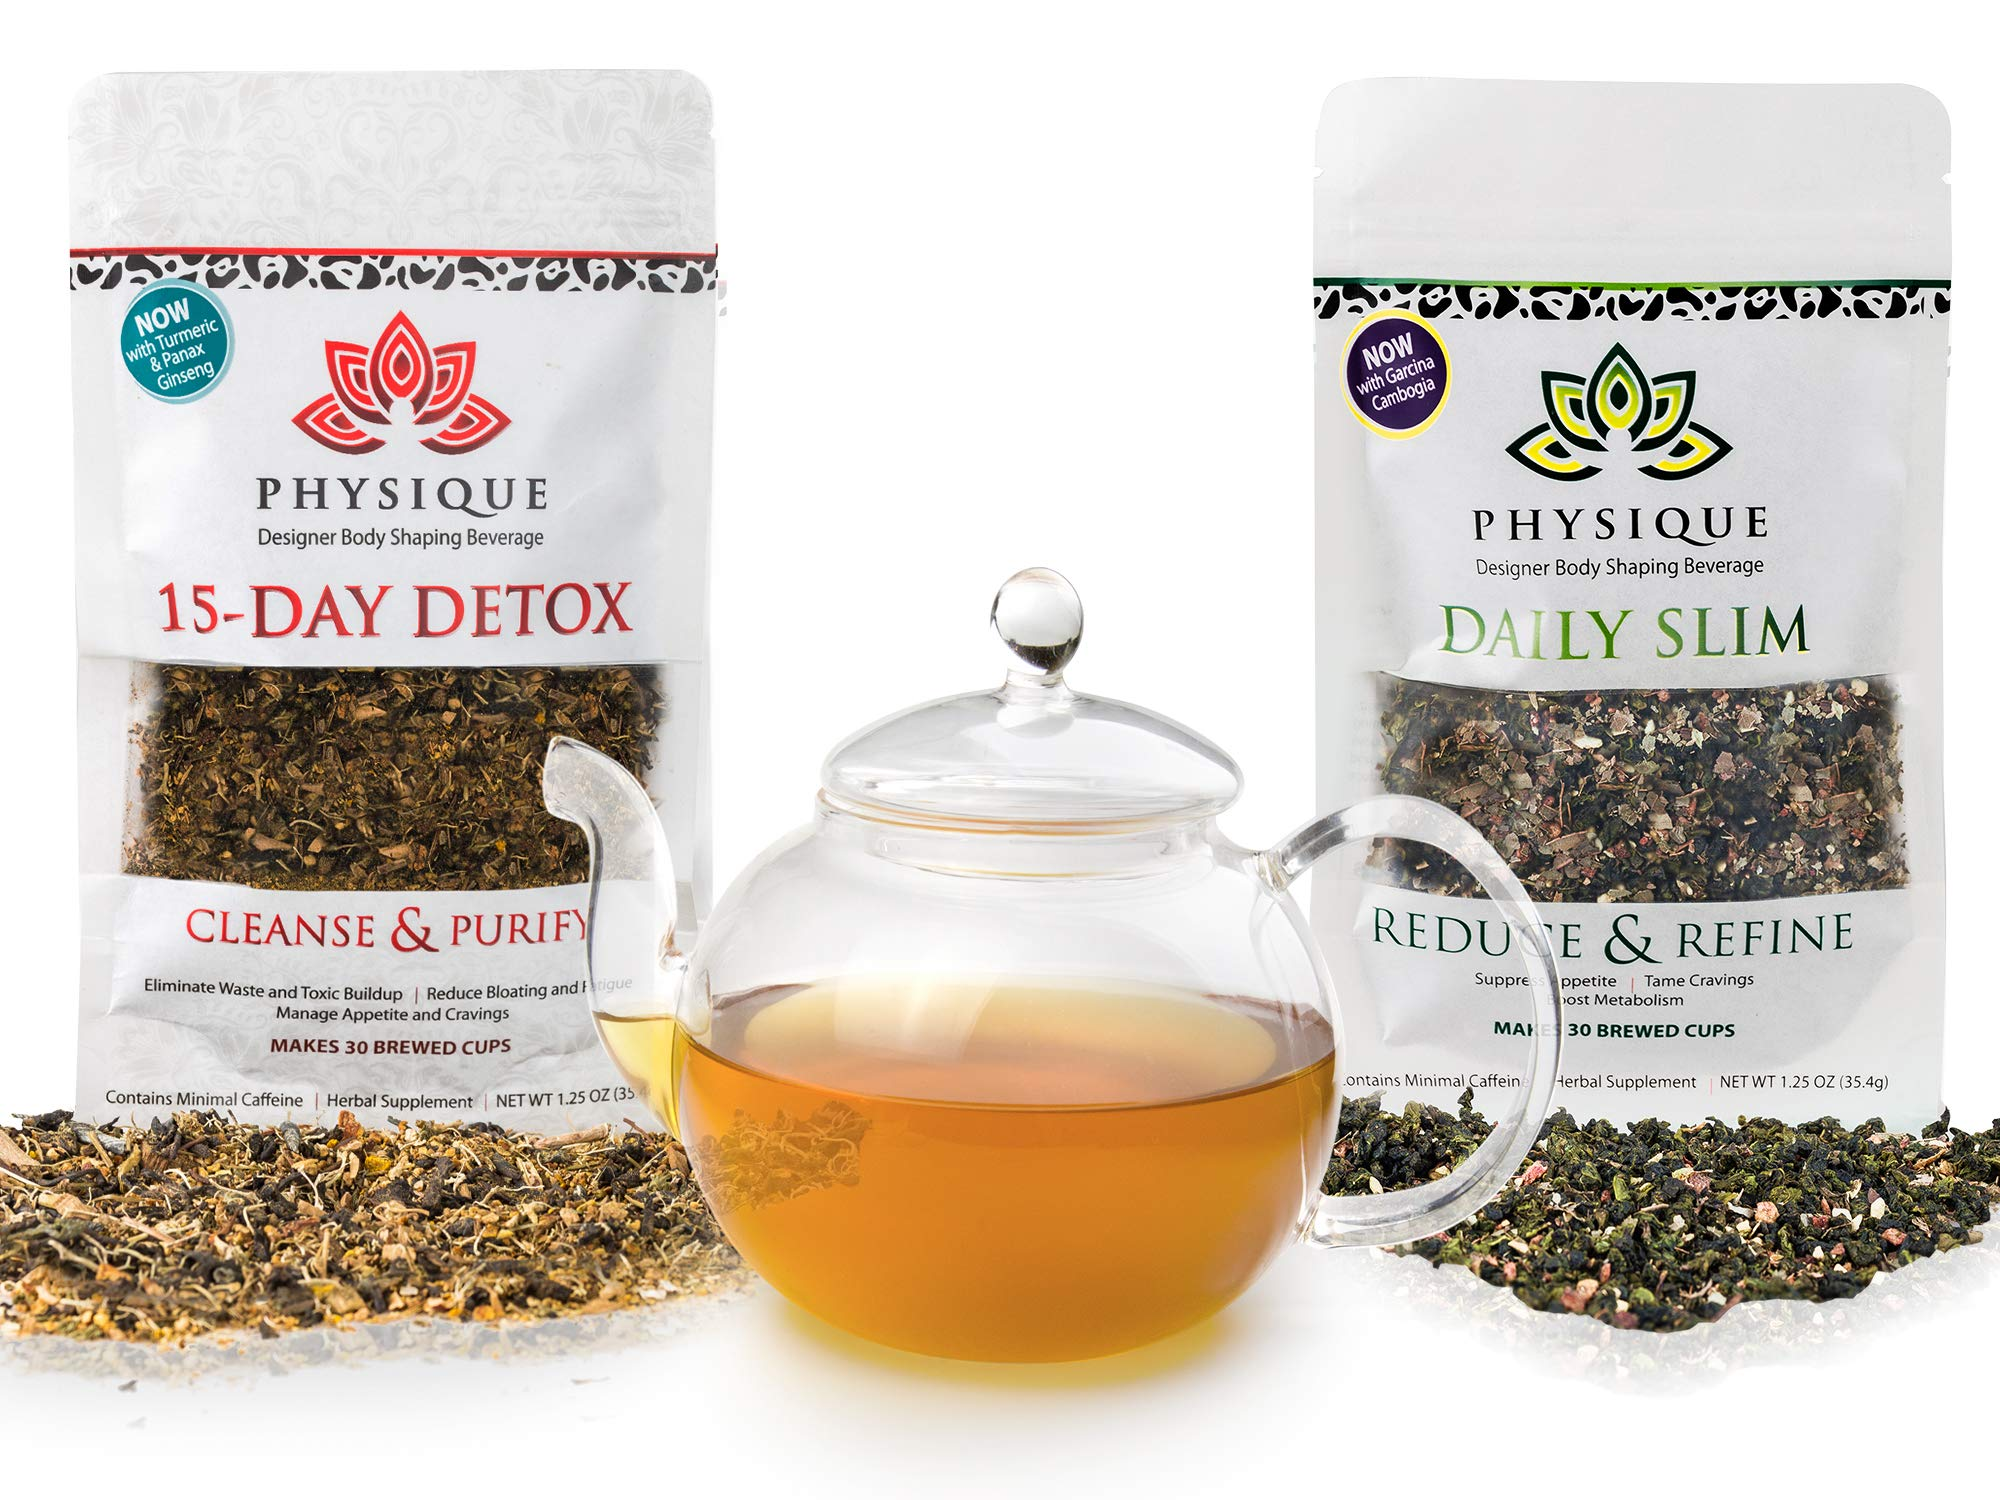 Physique Tea Ultimate Body Cleanse & Slimming Tea | Custom Blends to Reduce Bloating, Hunger and a Fat Tummy | Garcinia Cambogia & Turmeric Anti-Inflammatory & No Laxative Tea | Detox Diet Included by Physique